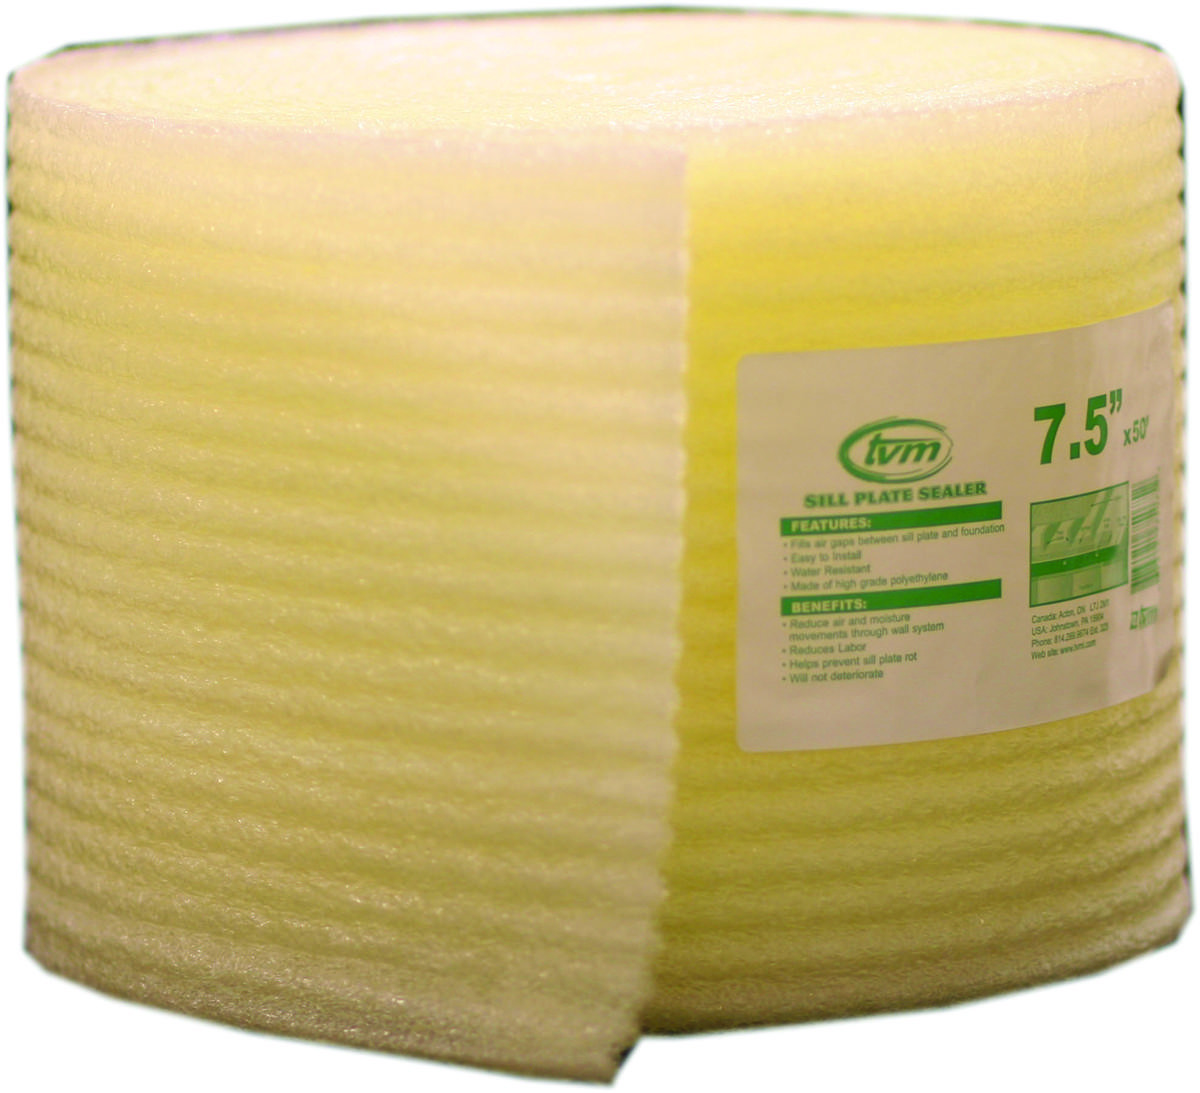 Innovative Energy W508 Sill Seal Foam 7 5 Inch Wide By 50 Foot Length By 1 4 Inch Thick 750958002686 1